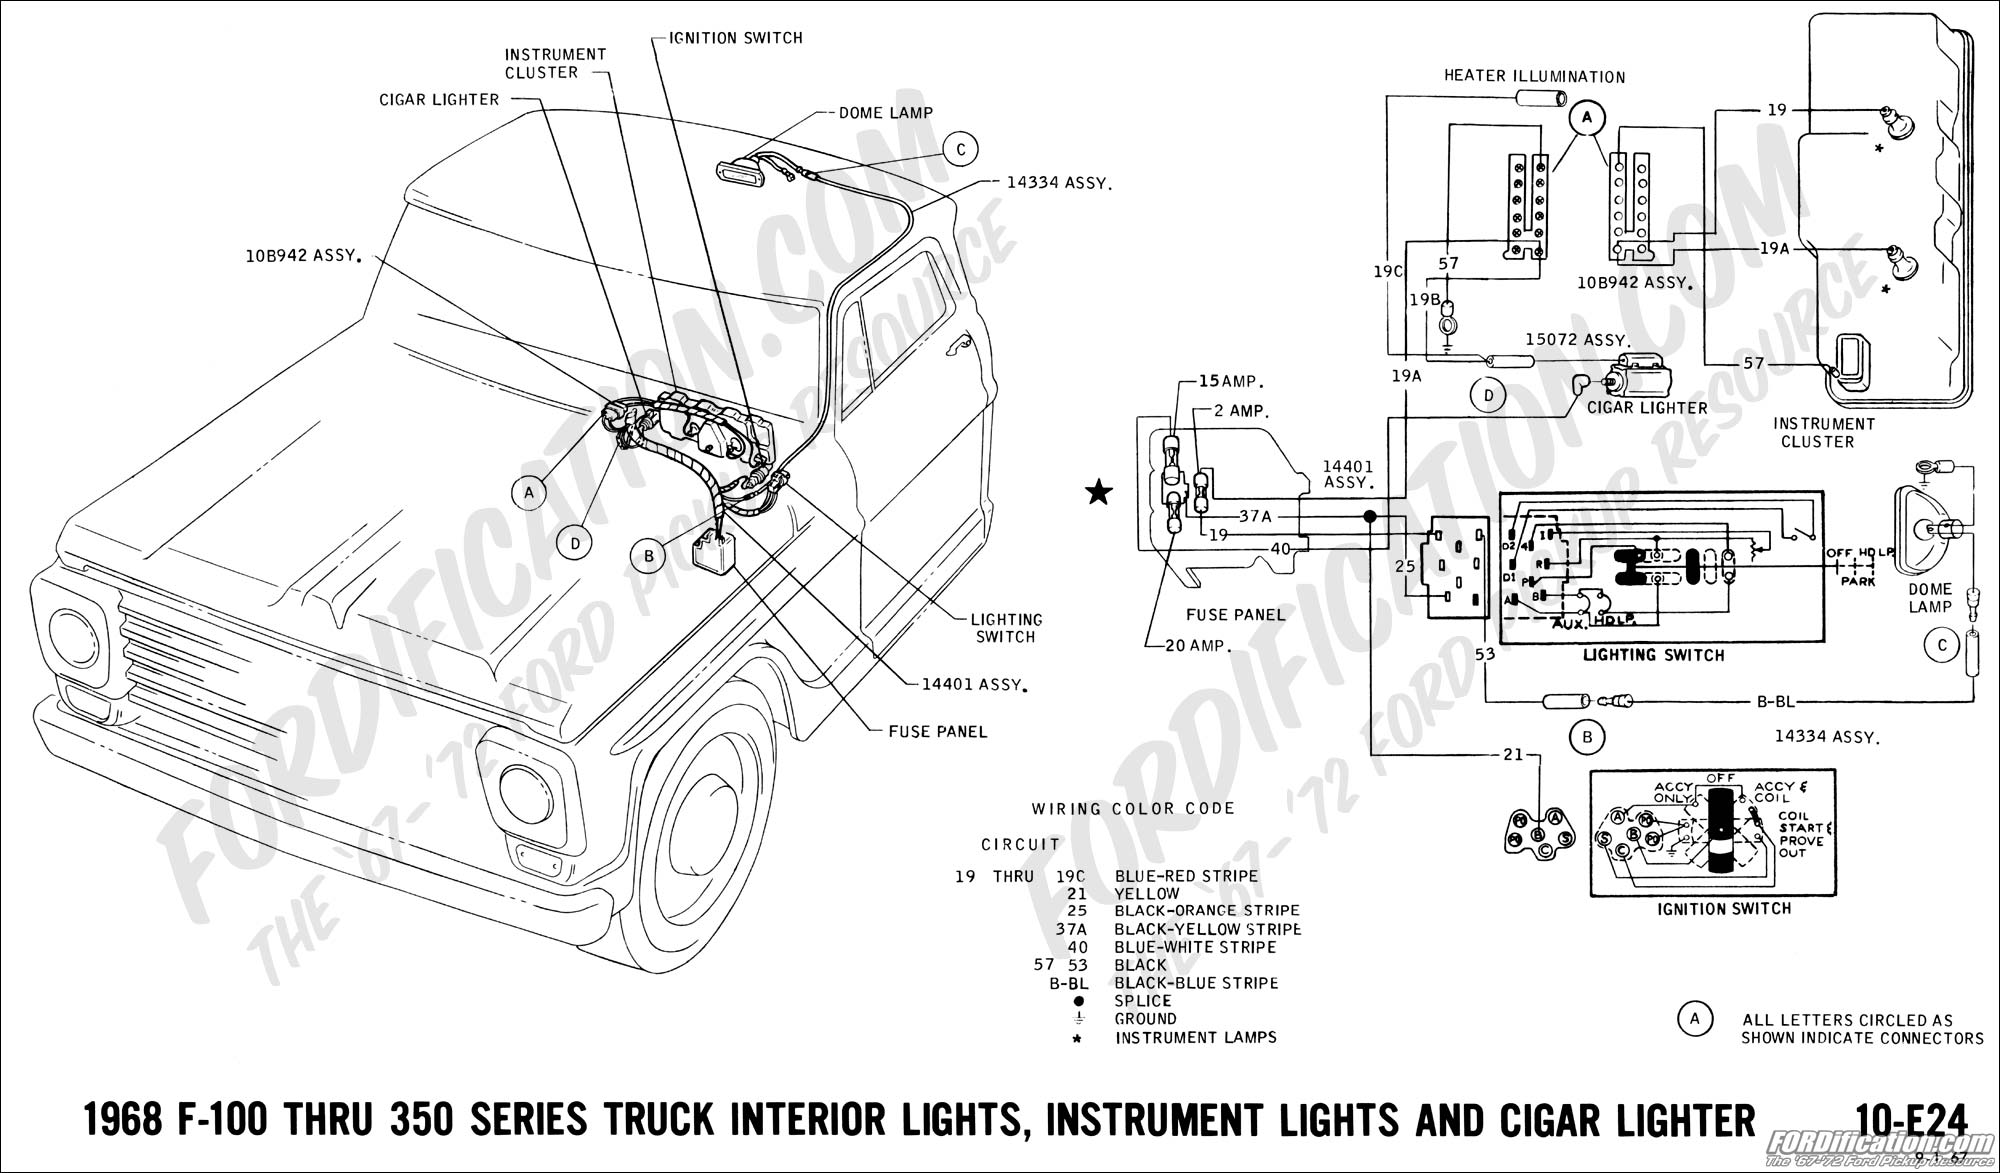 Chevrolet Camaro as well Attachment as well P besides Attachment together with Post. on 1978 ford truck wiring diagram